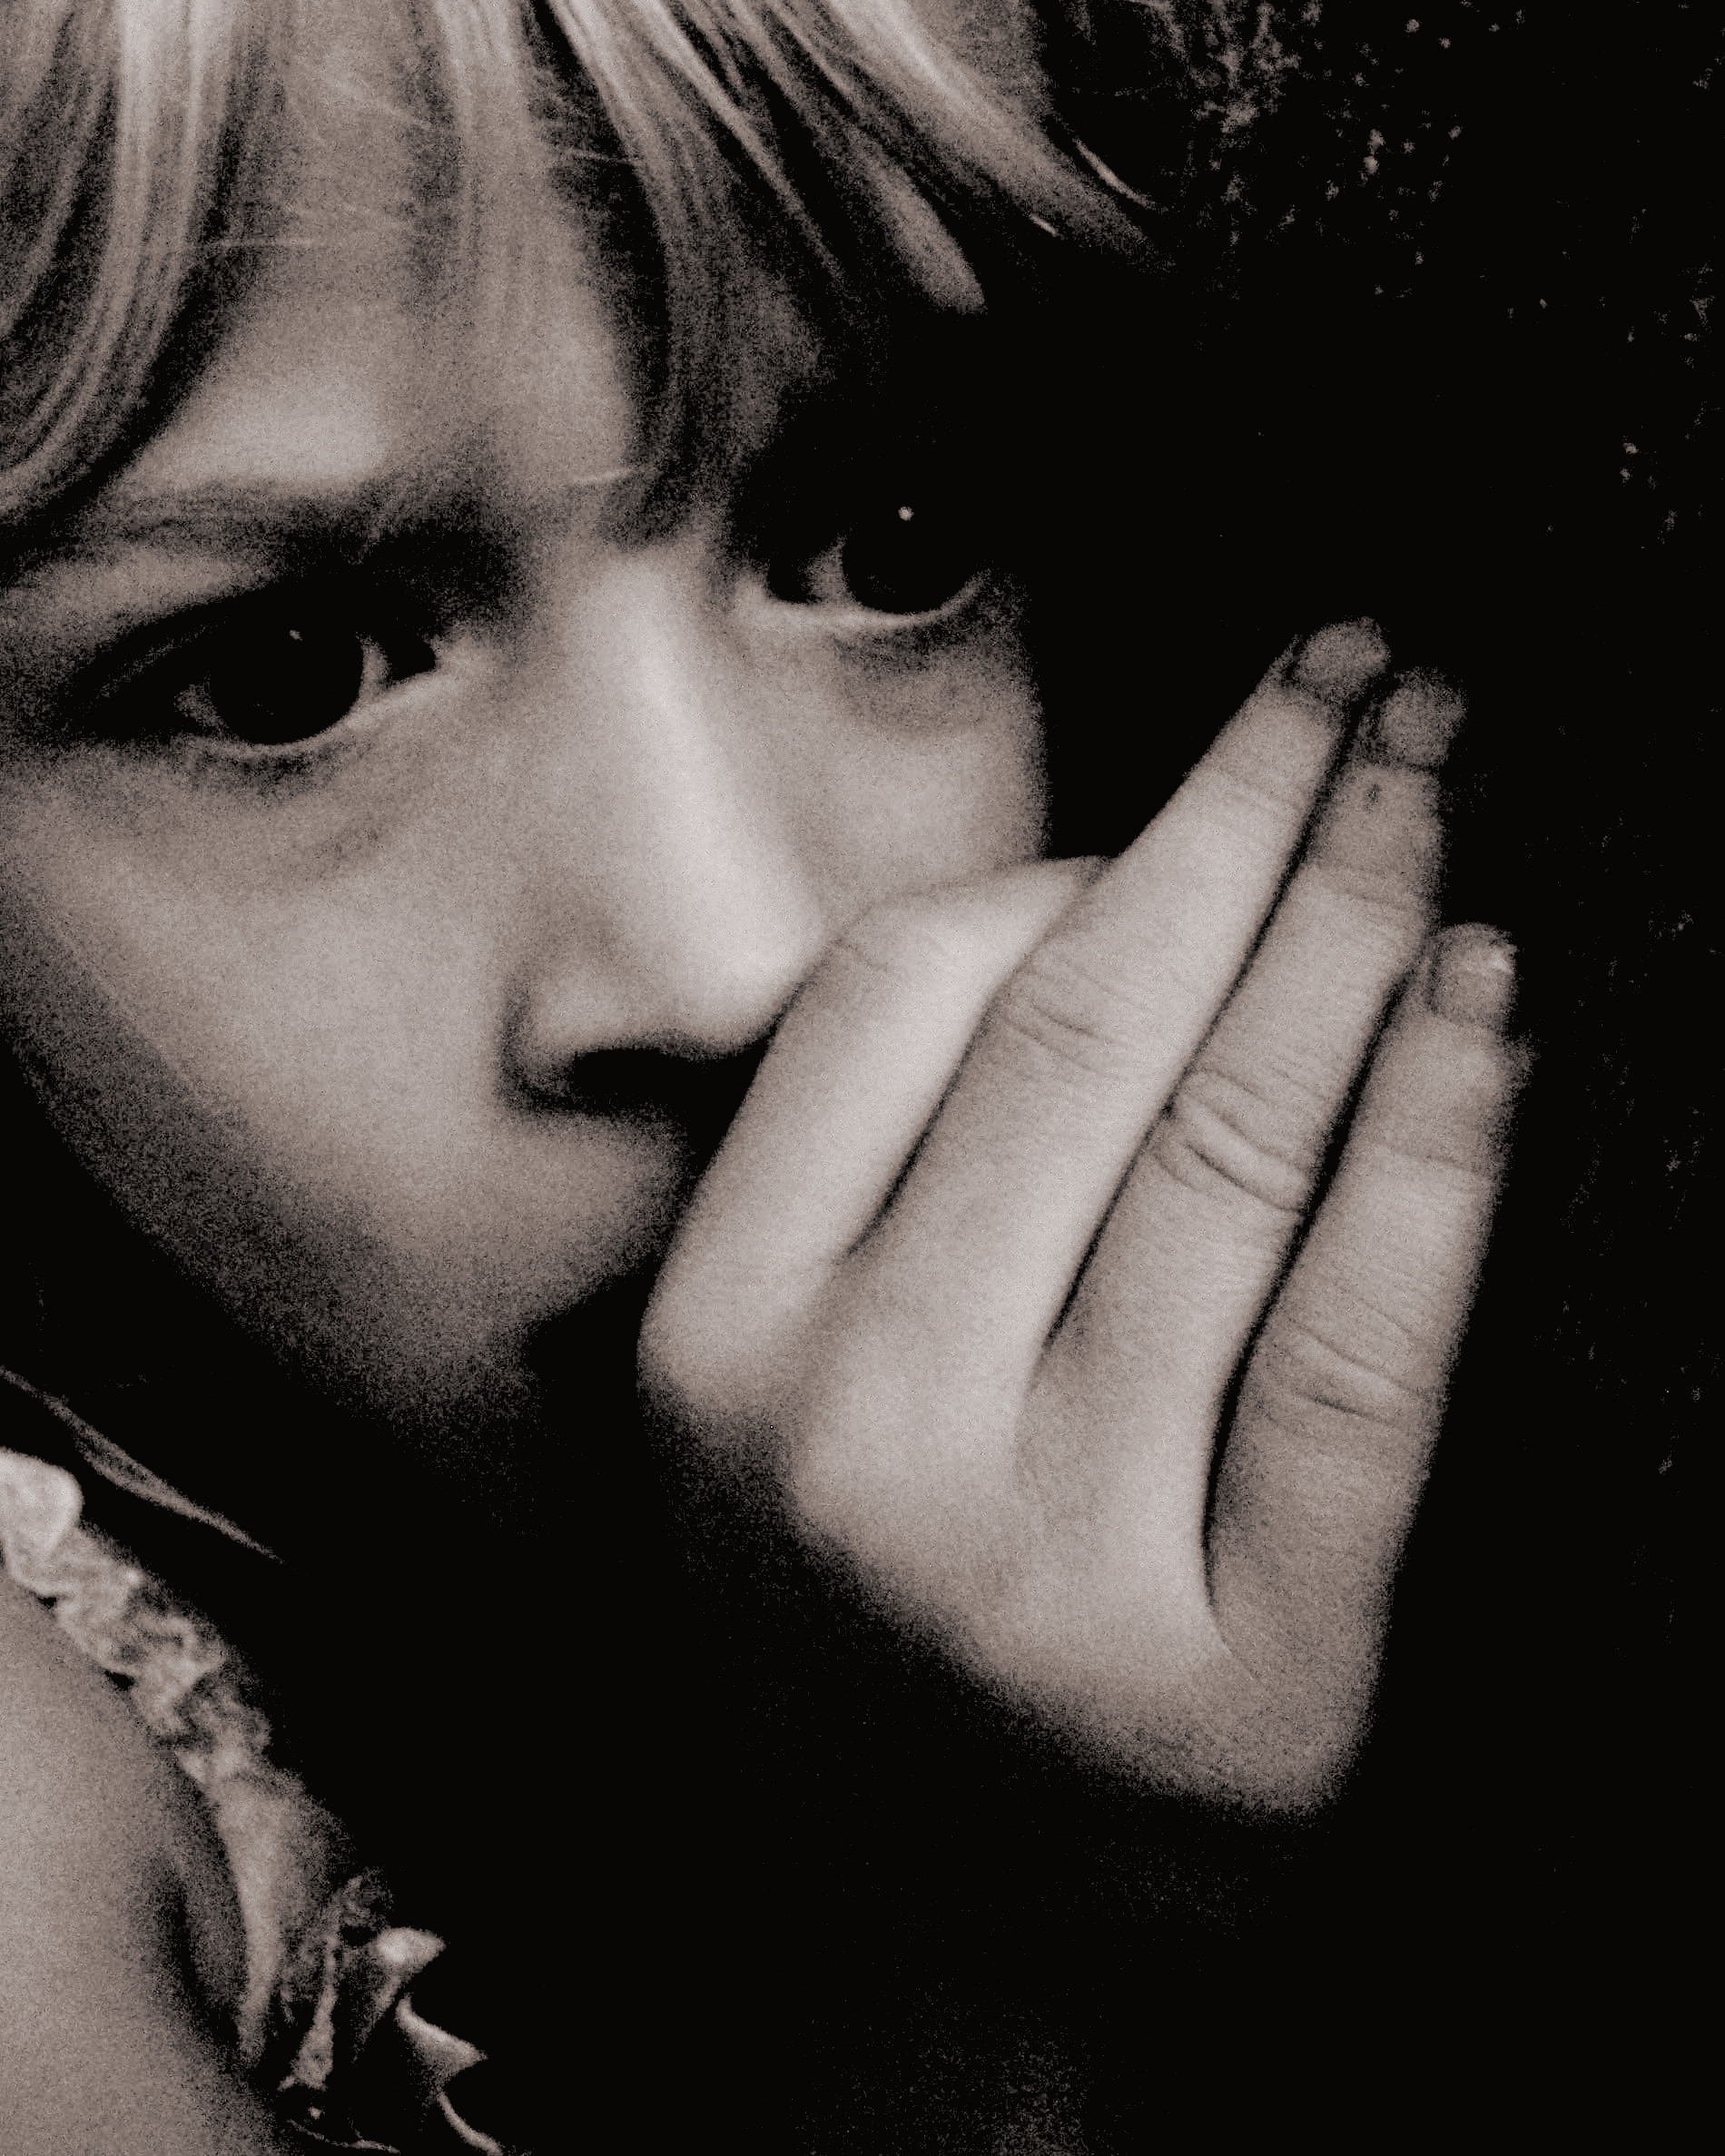 File:Scared Child at Nighttime.jpg